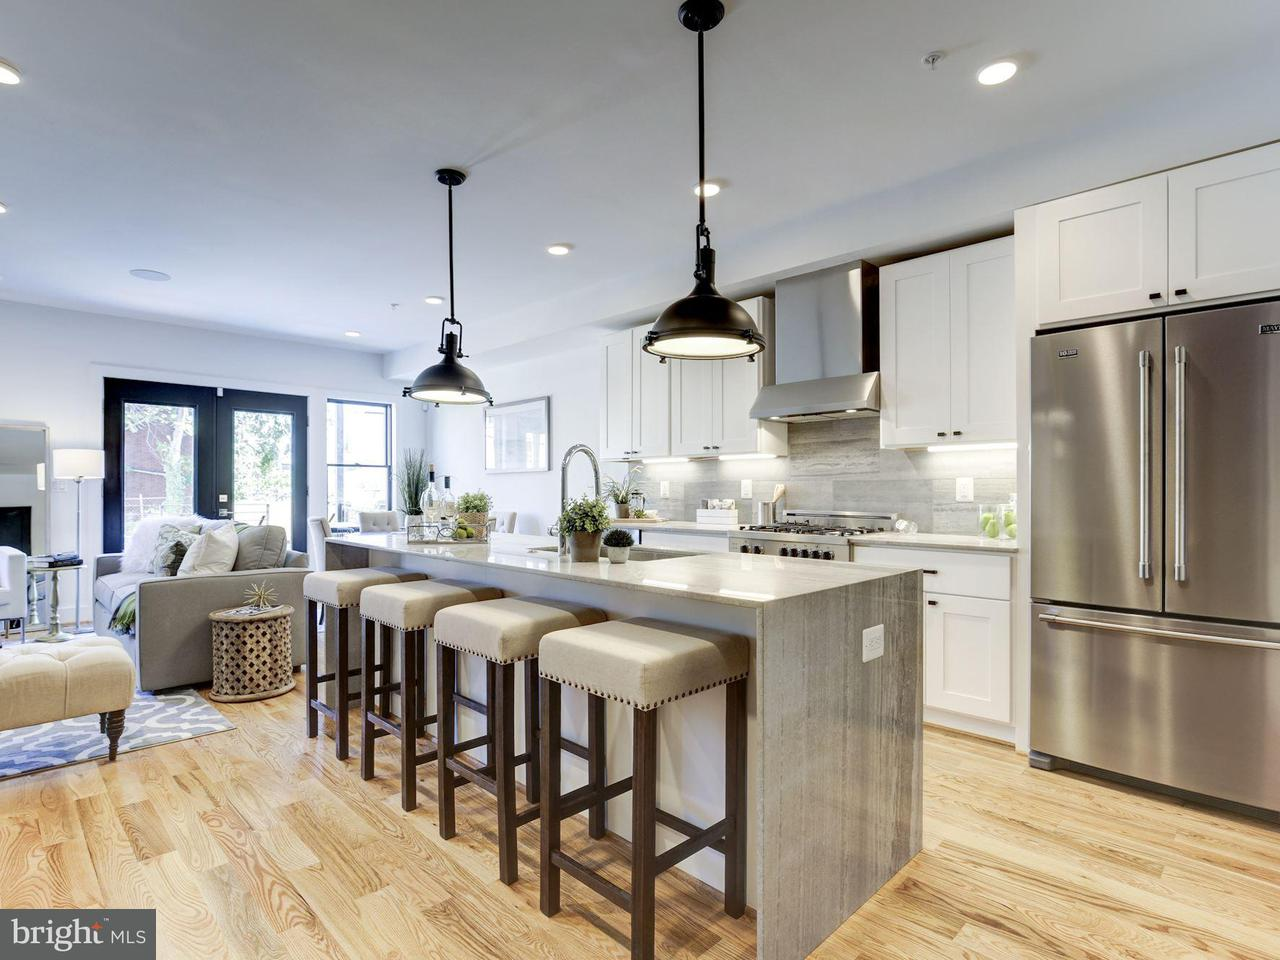 Townhouse for Sale at 3561 10TH ST NW #1 3561 10TH ST NW #1 Washington, District Of Columbia 20010 United States